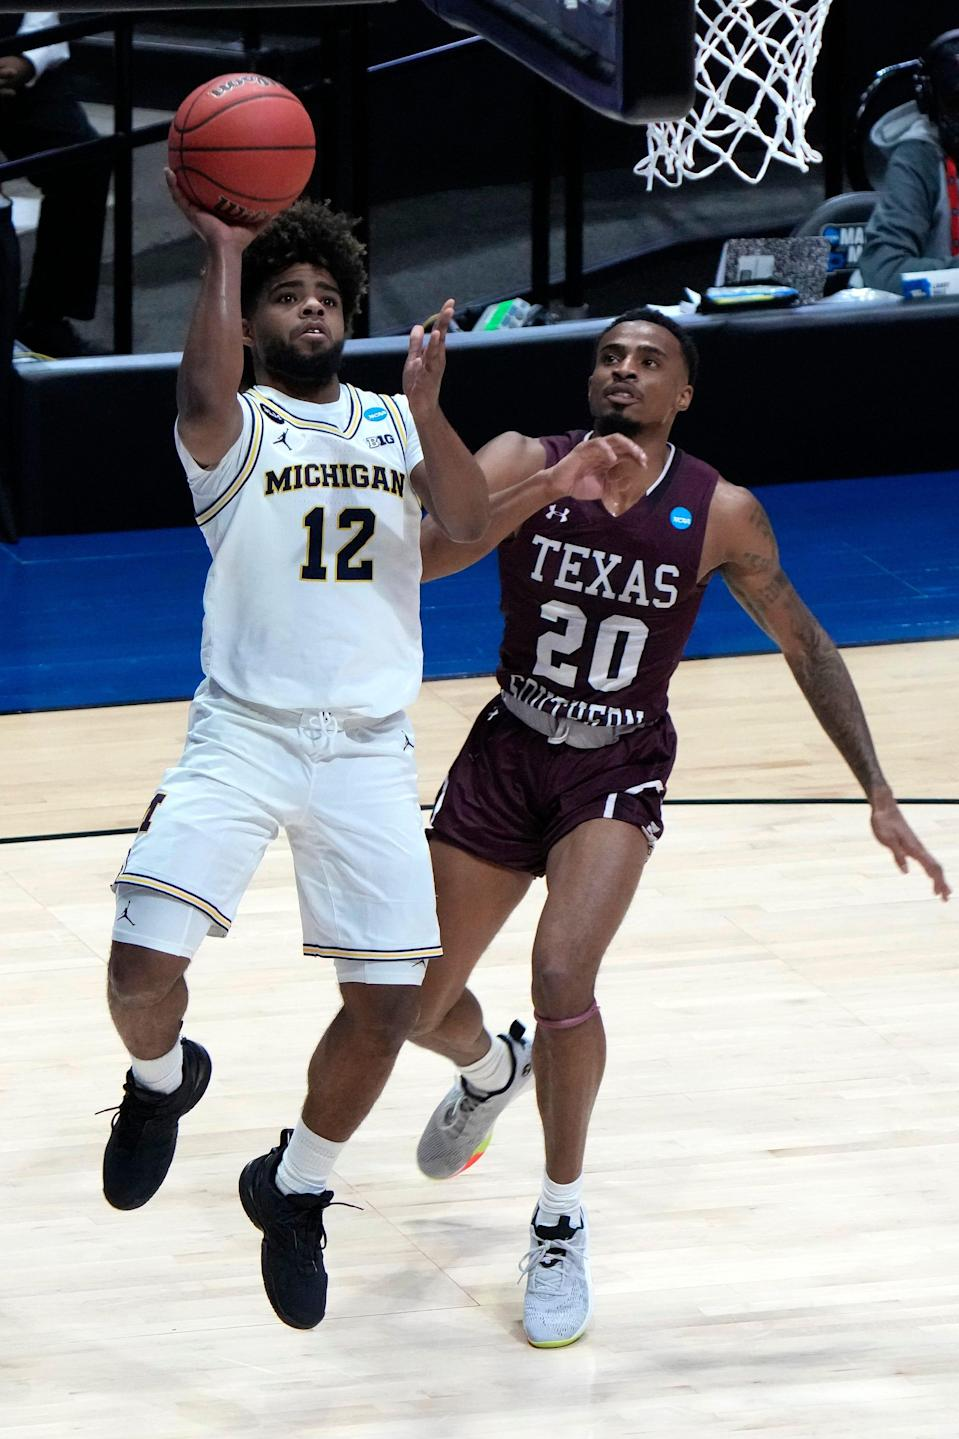 Michigan guard Mike Smith shoots against Texas Southern guard Michael Weathers during the first round of the NCAA tournament March 20, 2021.